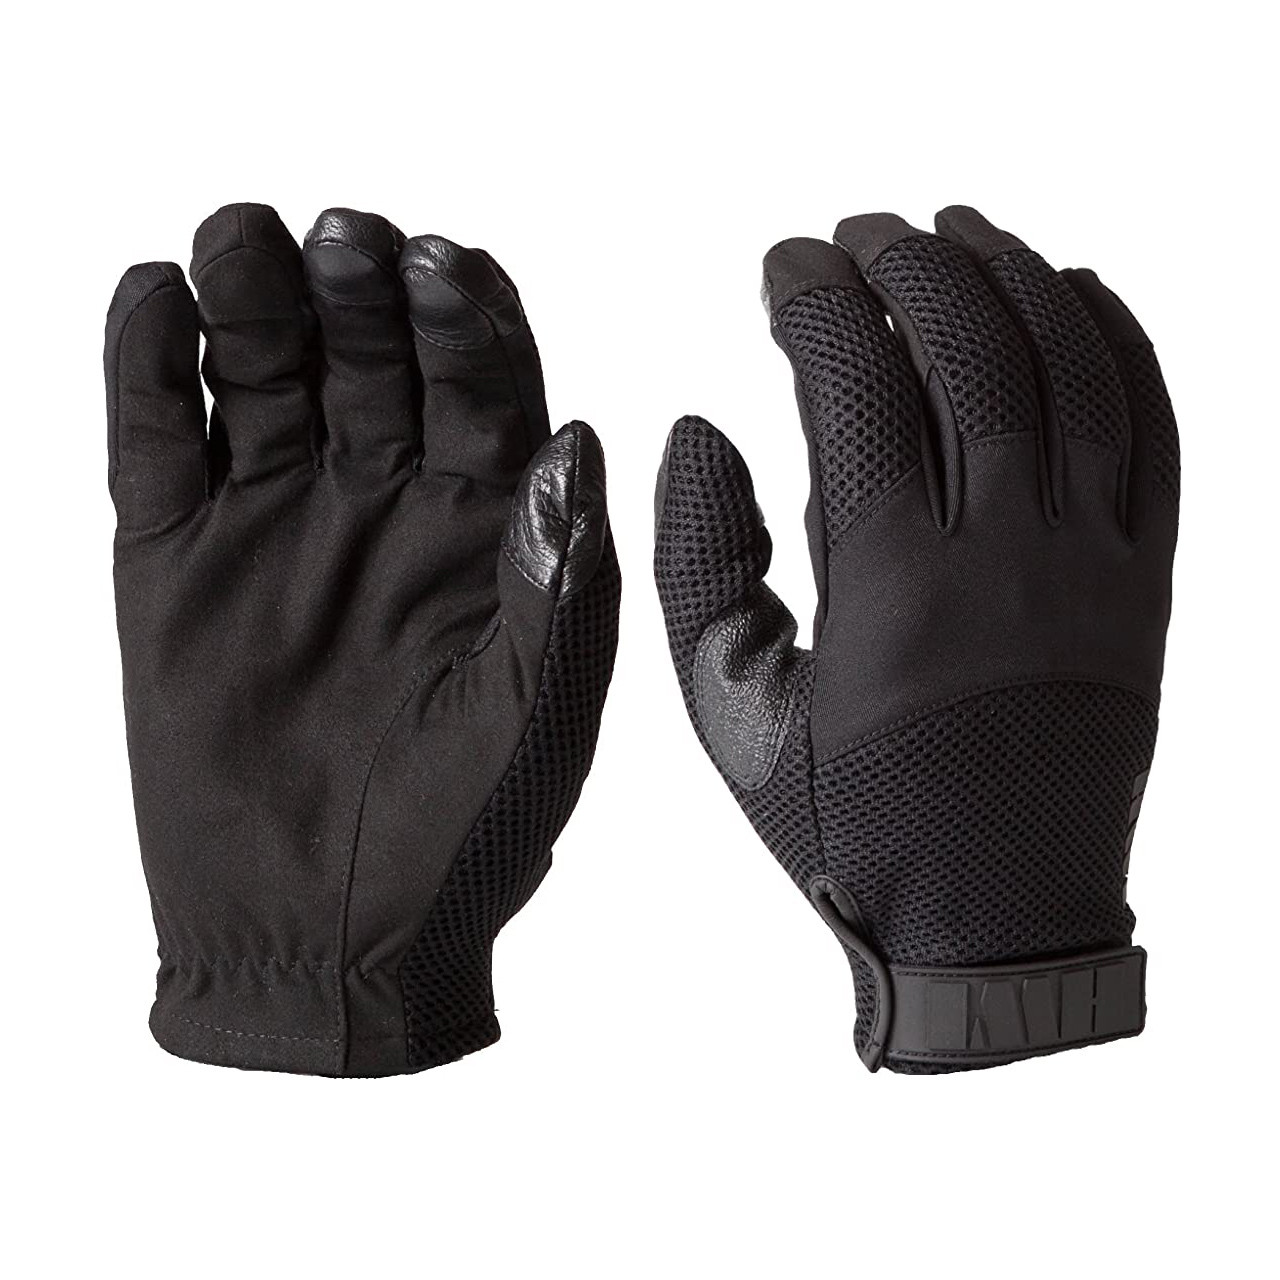 53268 HWI UNLINED TOUGH SCREEN GLOVES